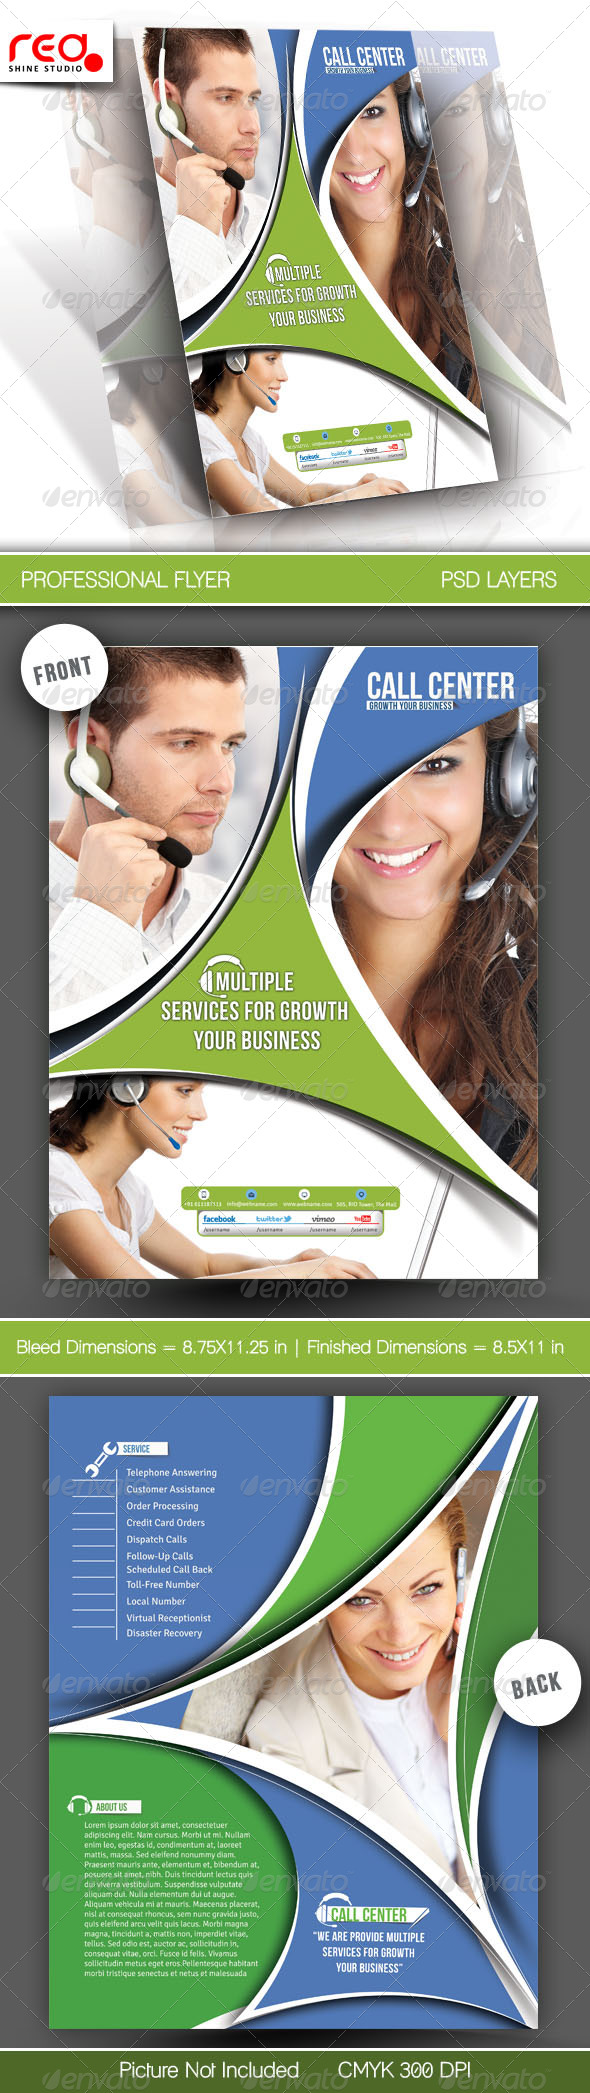 Customer Support Flyer & Poster Template 2